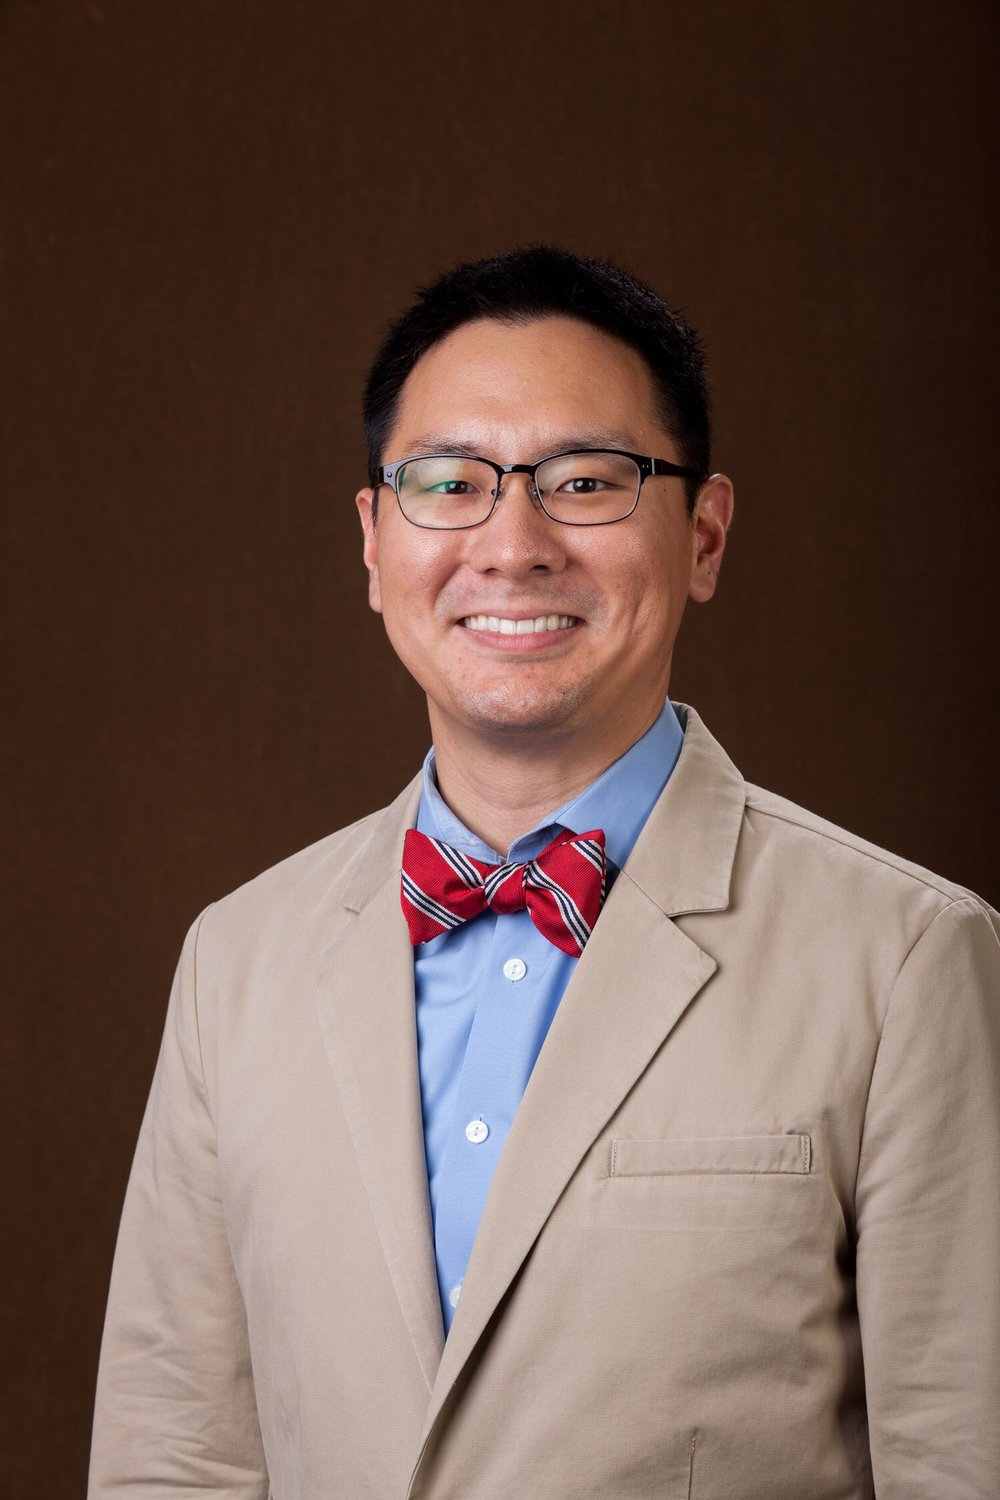 Dr. Samuel Kim   Assistant Professor at Texas Woman's University  Georgia State University, School Psychology, M.Ed., Ed.S., Ph.D.